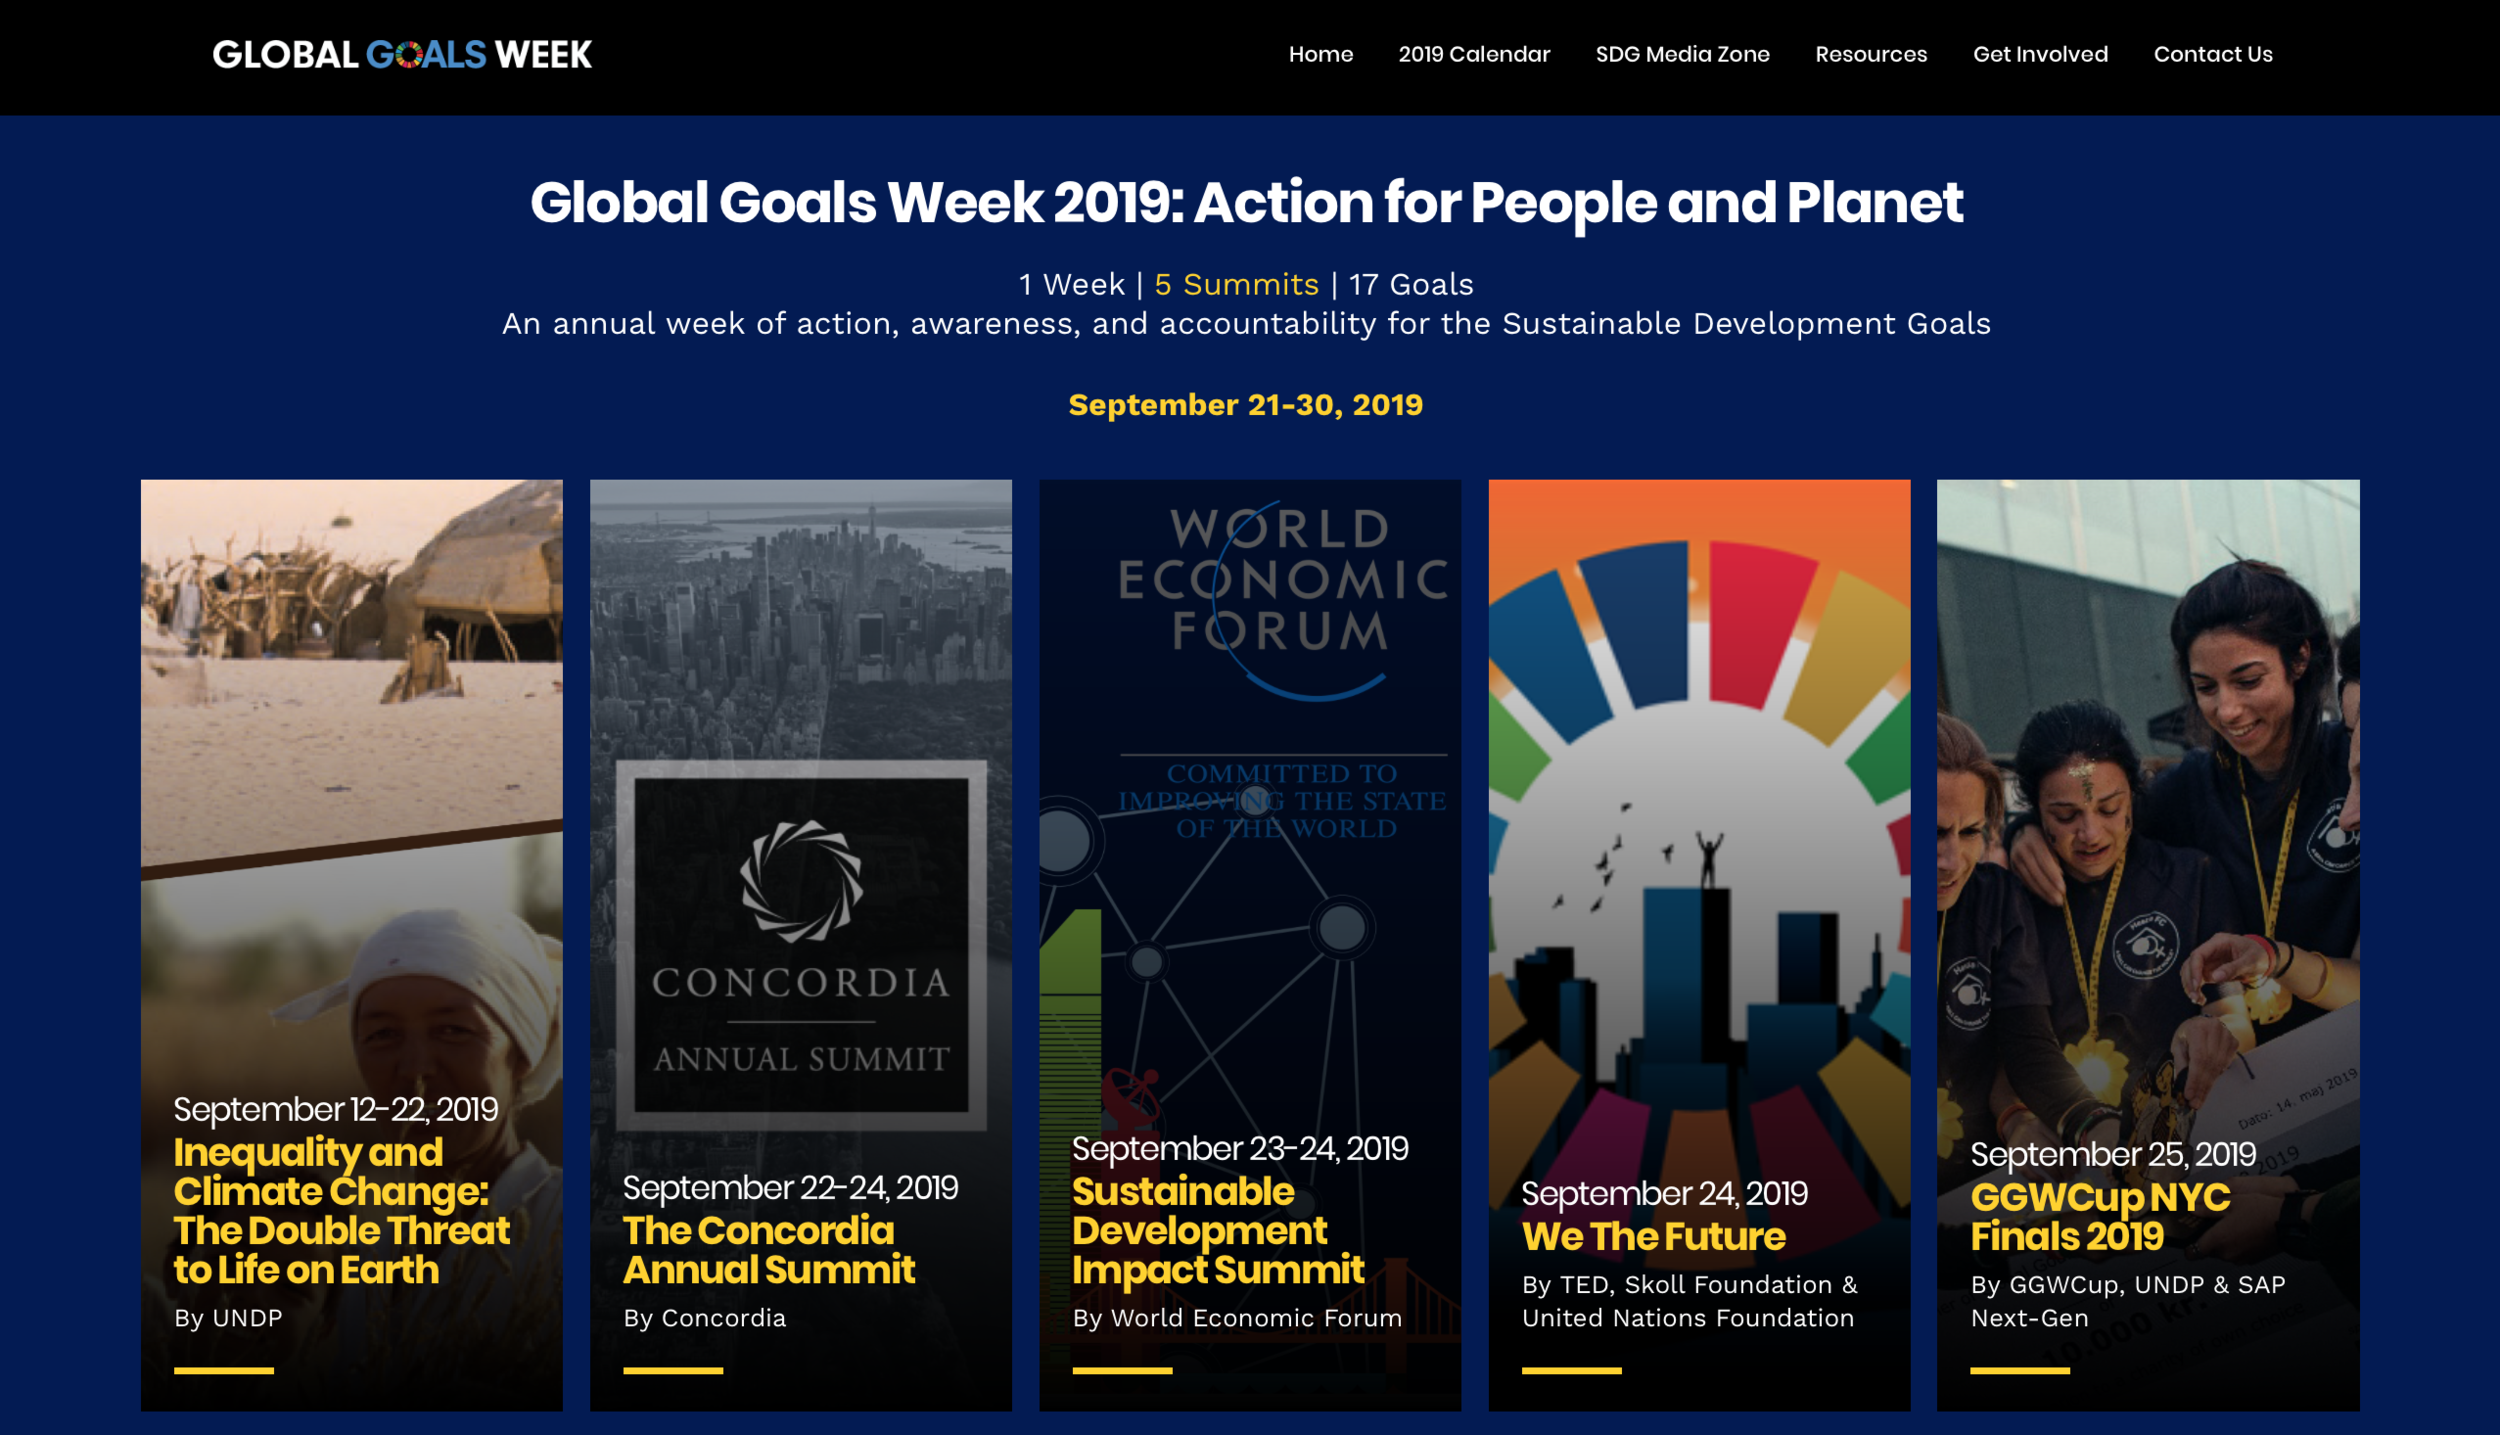 Global Goals Week 2019 - 1 Week | 5 Summits | 17 Goals - Again this year we are proud to be part of the biggest week of the year: The Global Goals week in NYC to build momentum to achieve the SDGs.